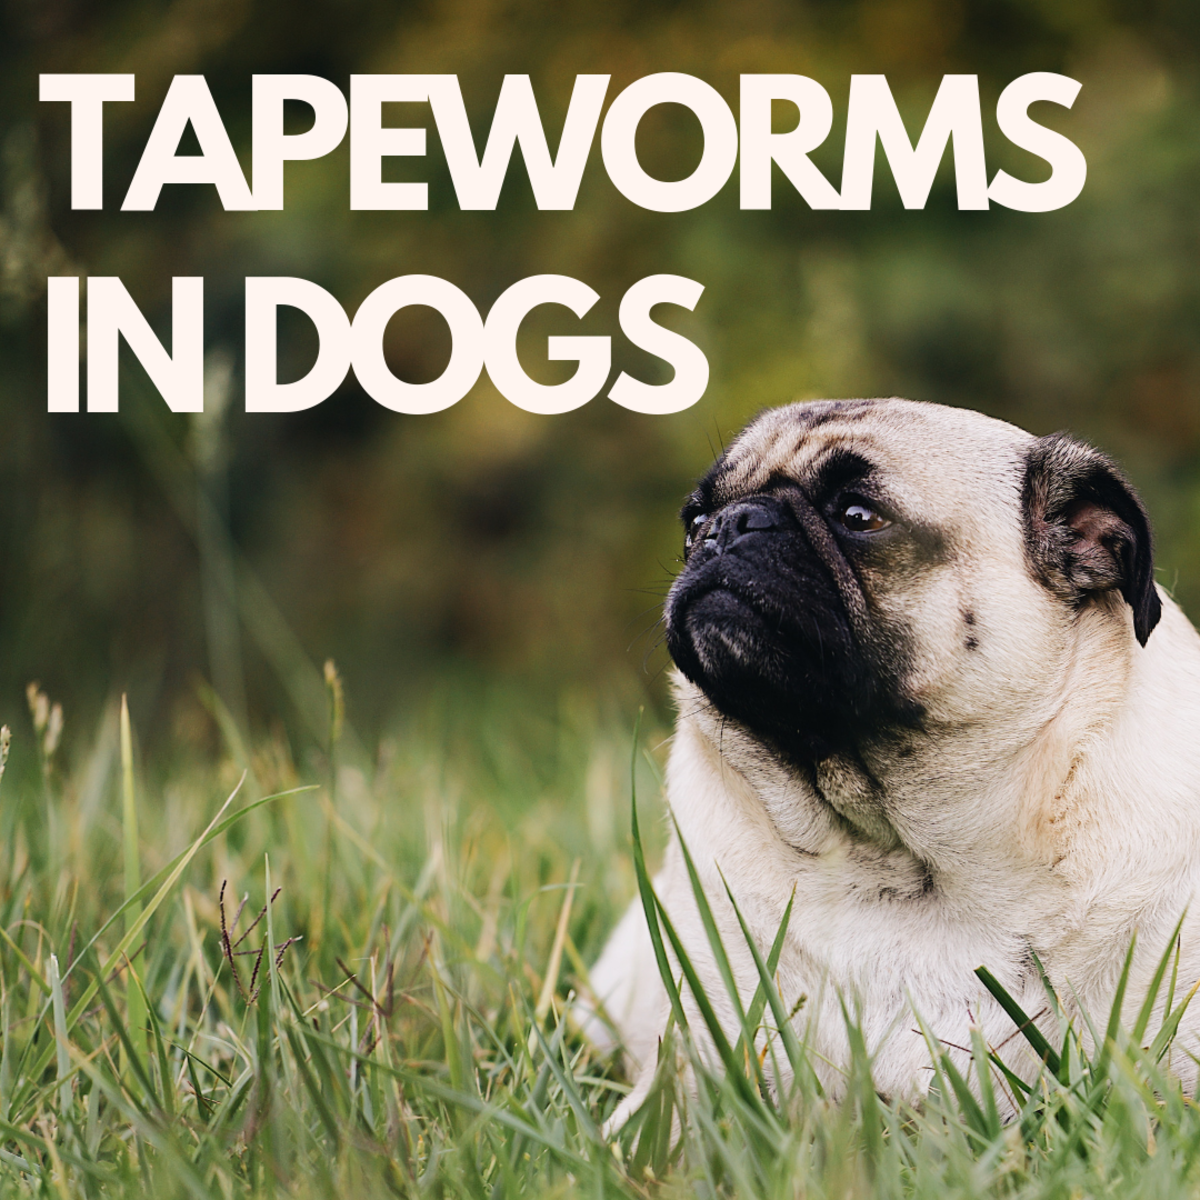 Dog Tapeworms: Causes, Symptoms, and Treatment